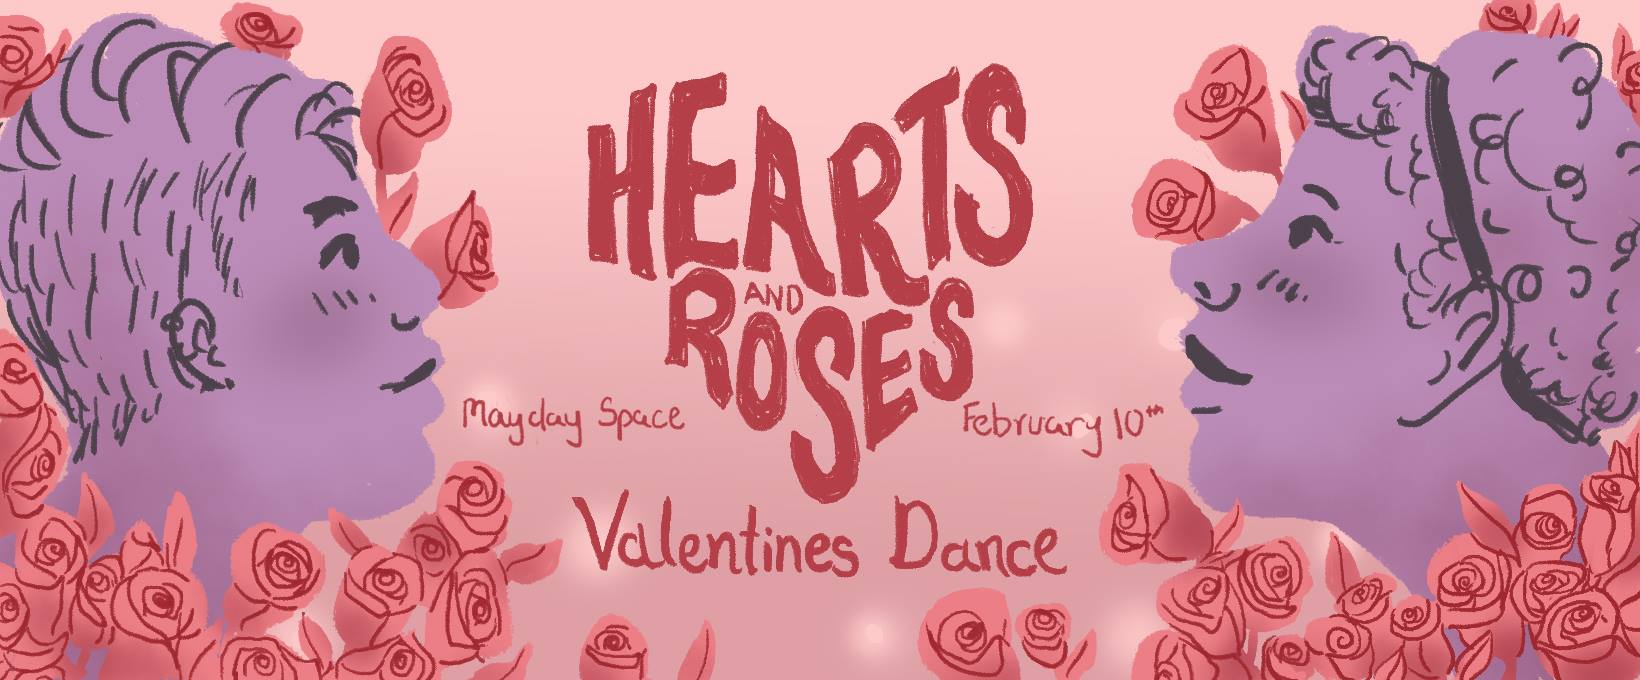 hearts and roses dance.jpg